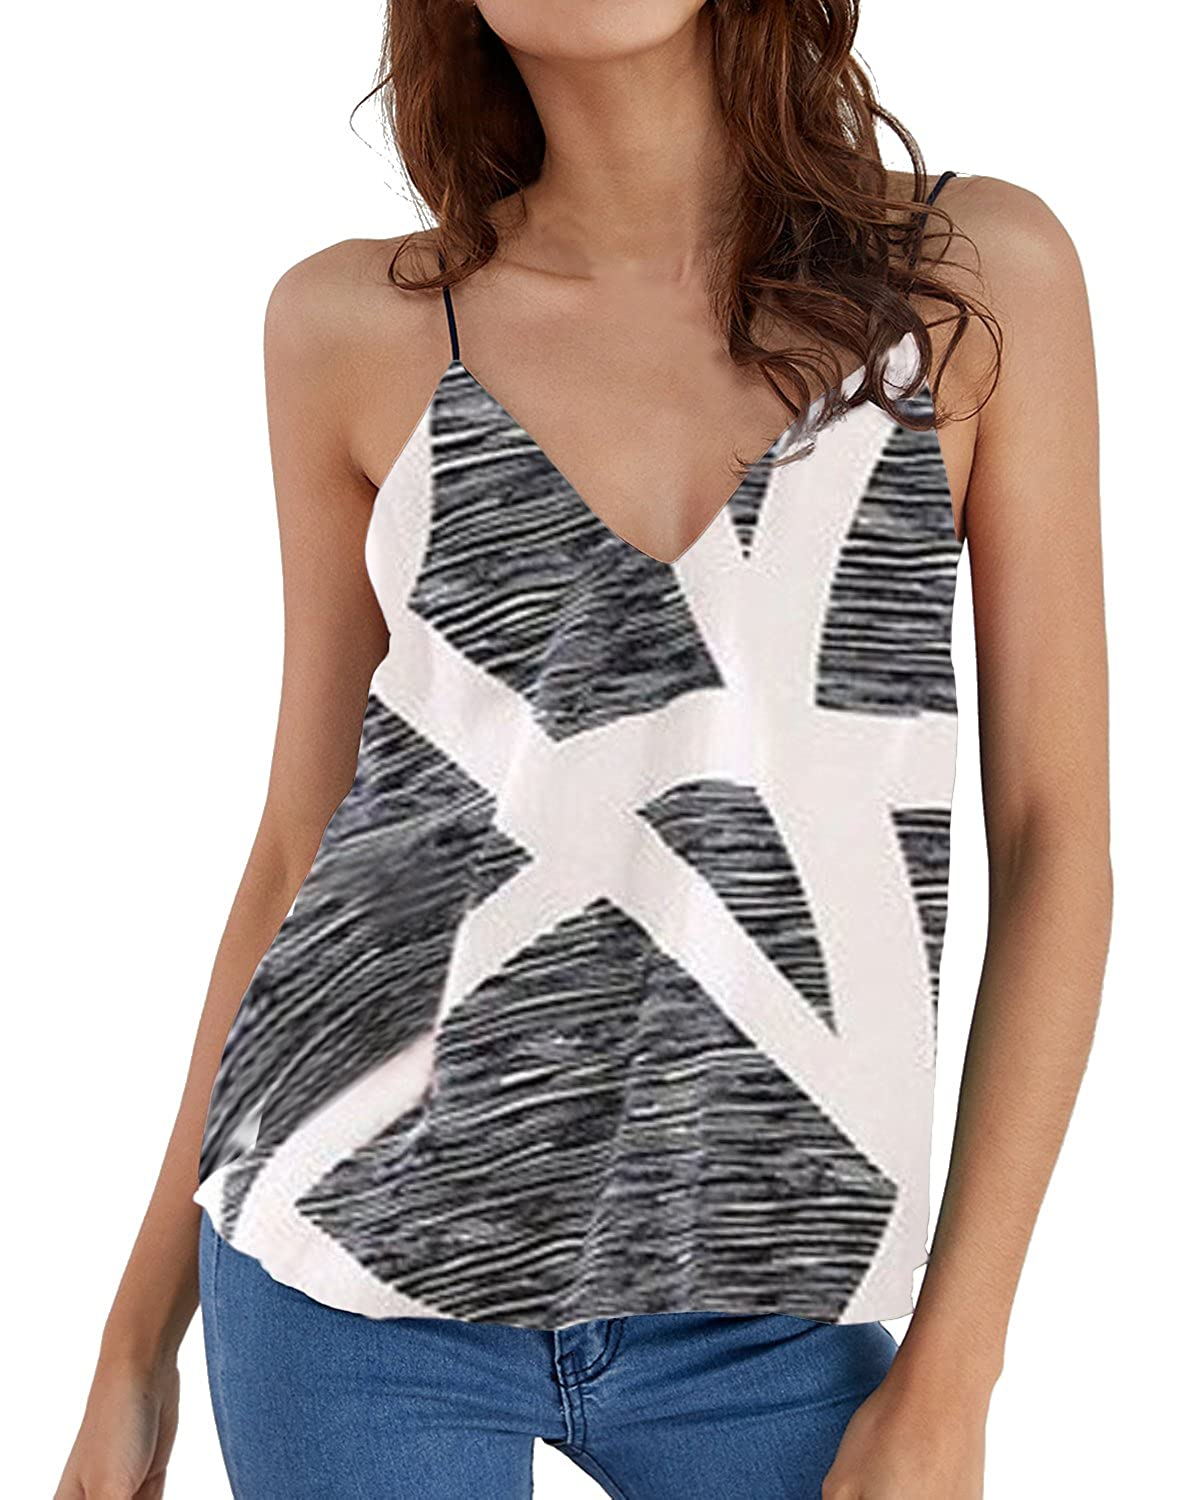 86f7874cd5e64a Women Summer top material  95% polyester and 5% spandex